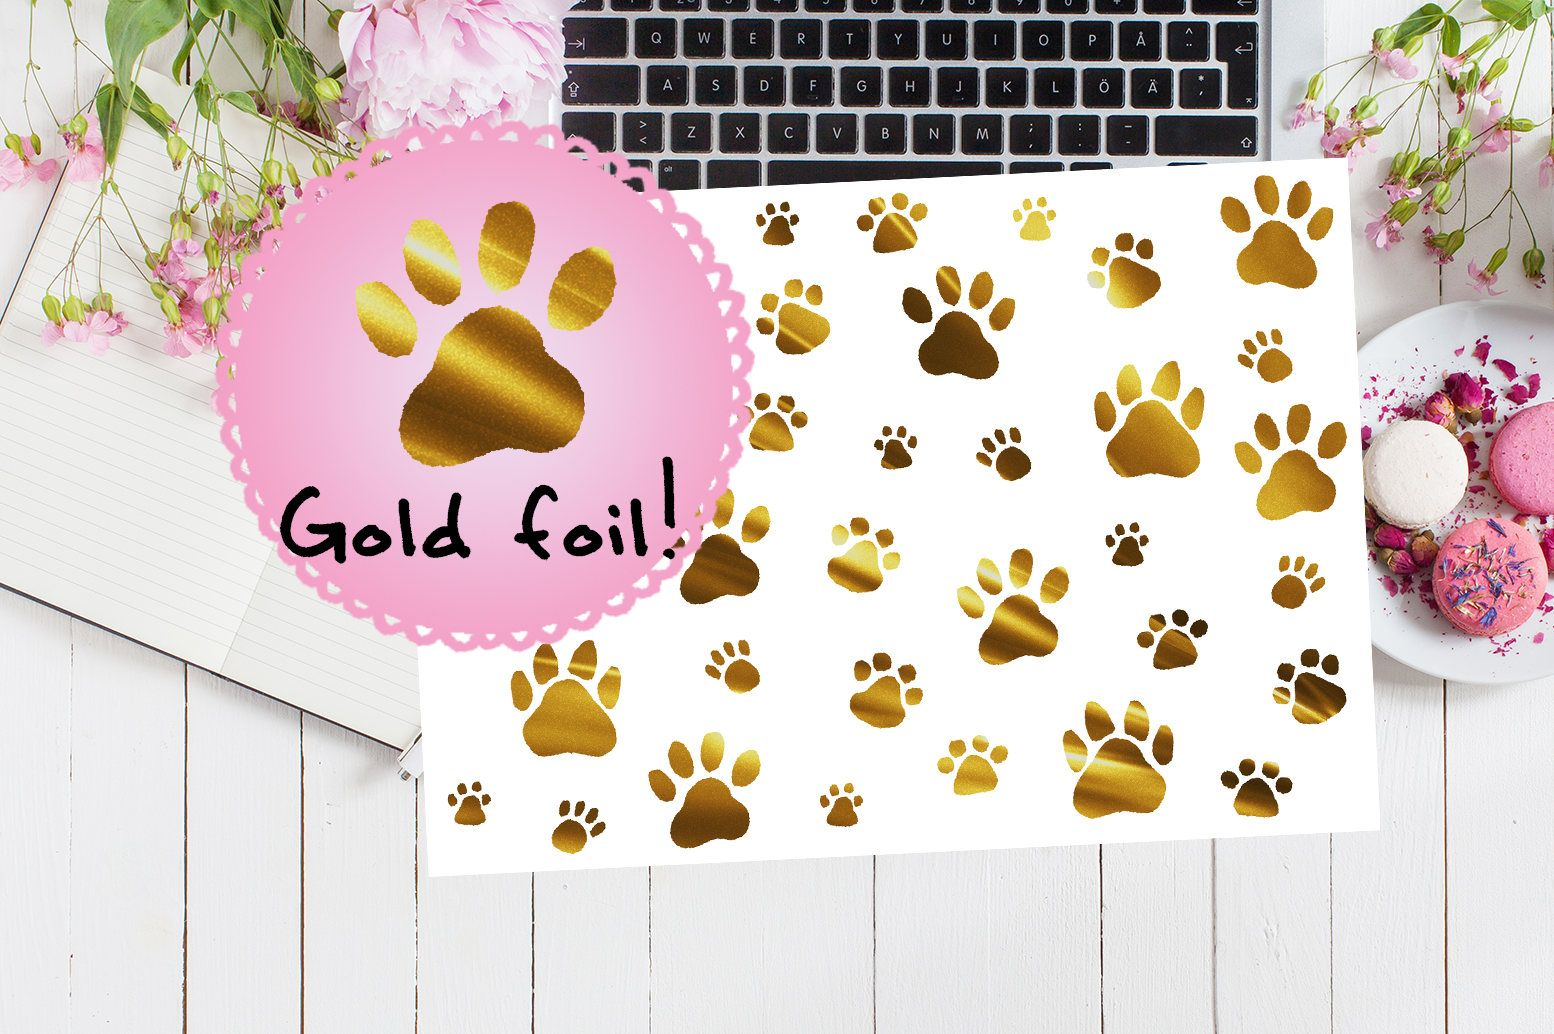 30 clear foil paw print stickers animals dogs cats pet gold foiled metallic stickers planner cute diary calendar shiny gift